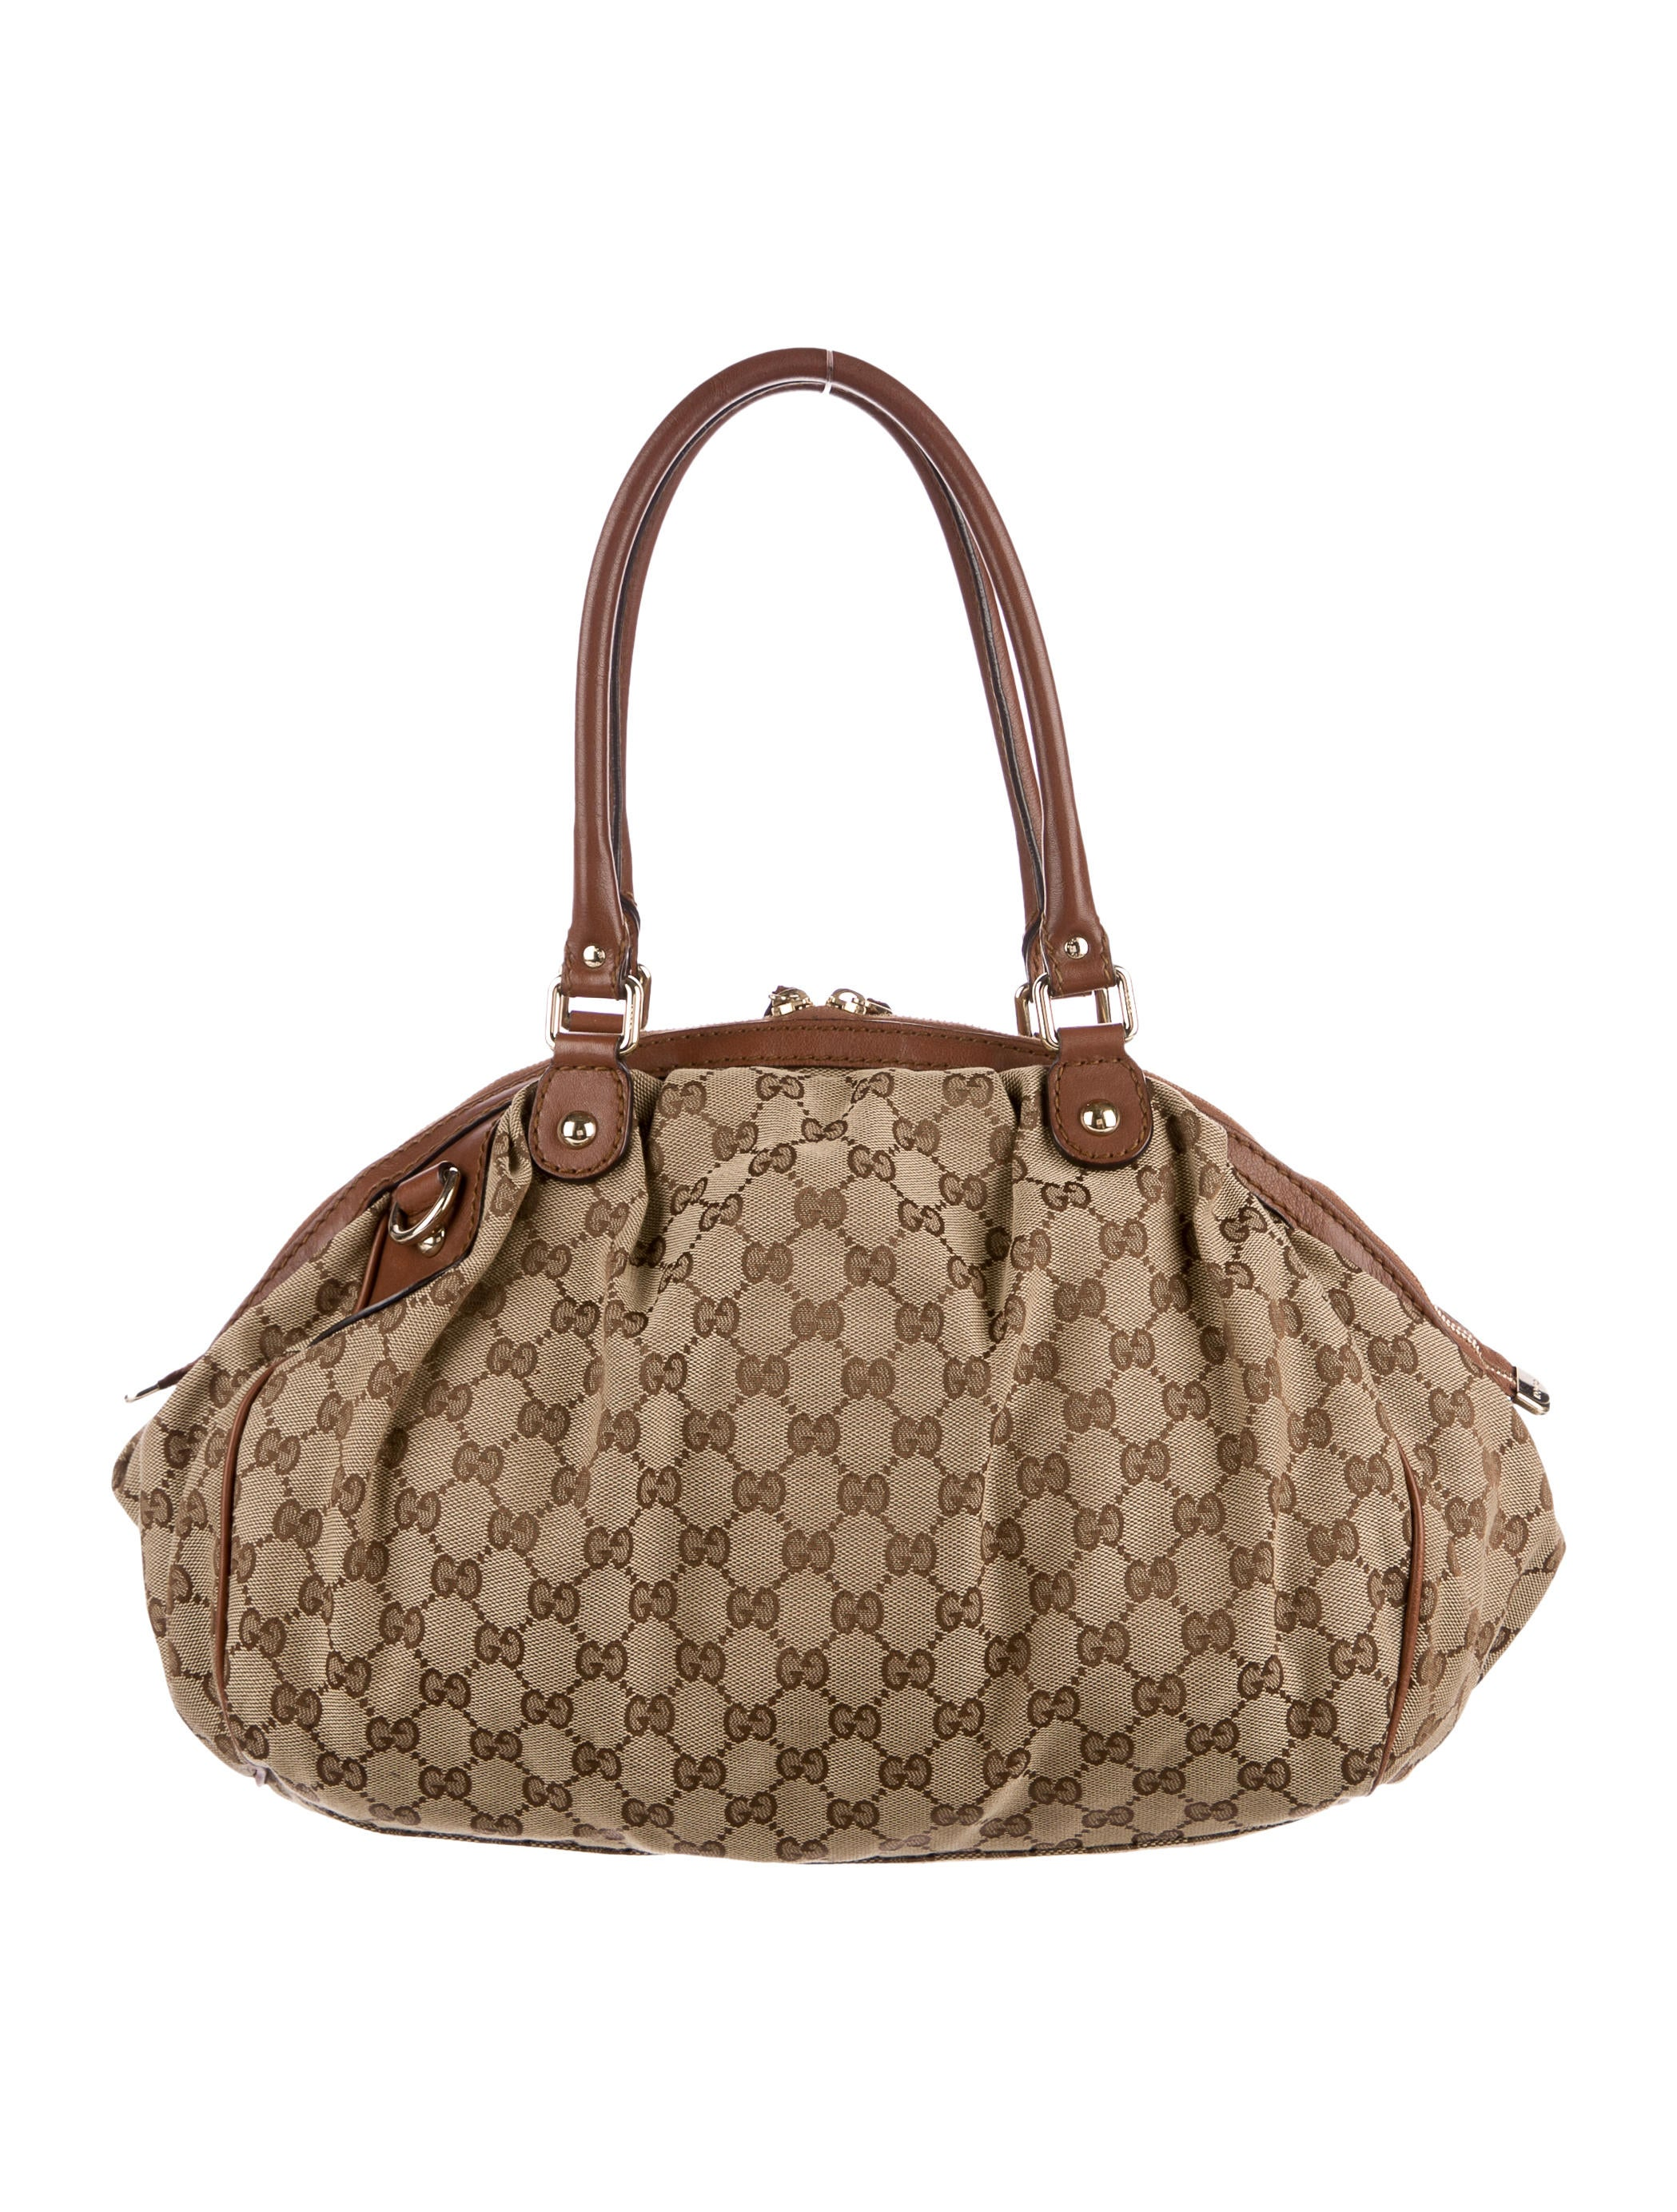 26eac107d5b9 Gucci GG Medium Sukey Boston Bag - Handbags - GUC173581 | The RealReal. Gucci  Orange ...